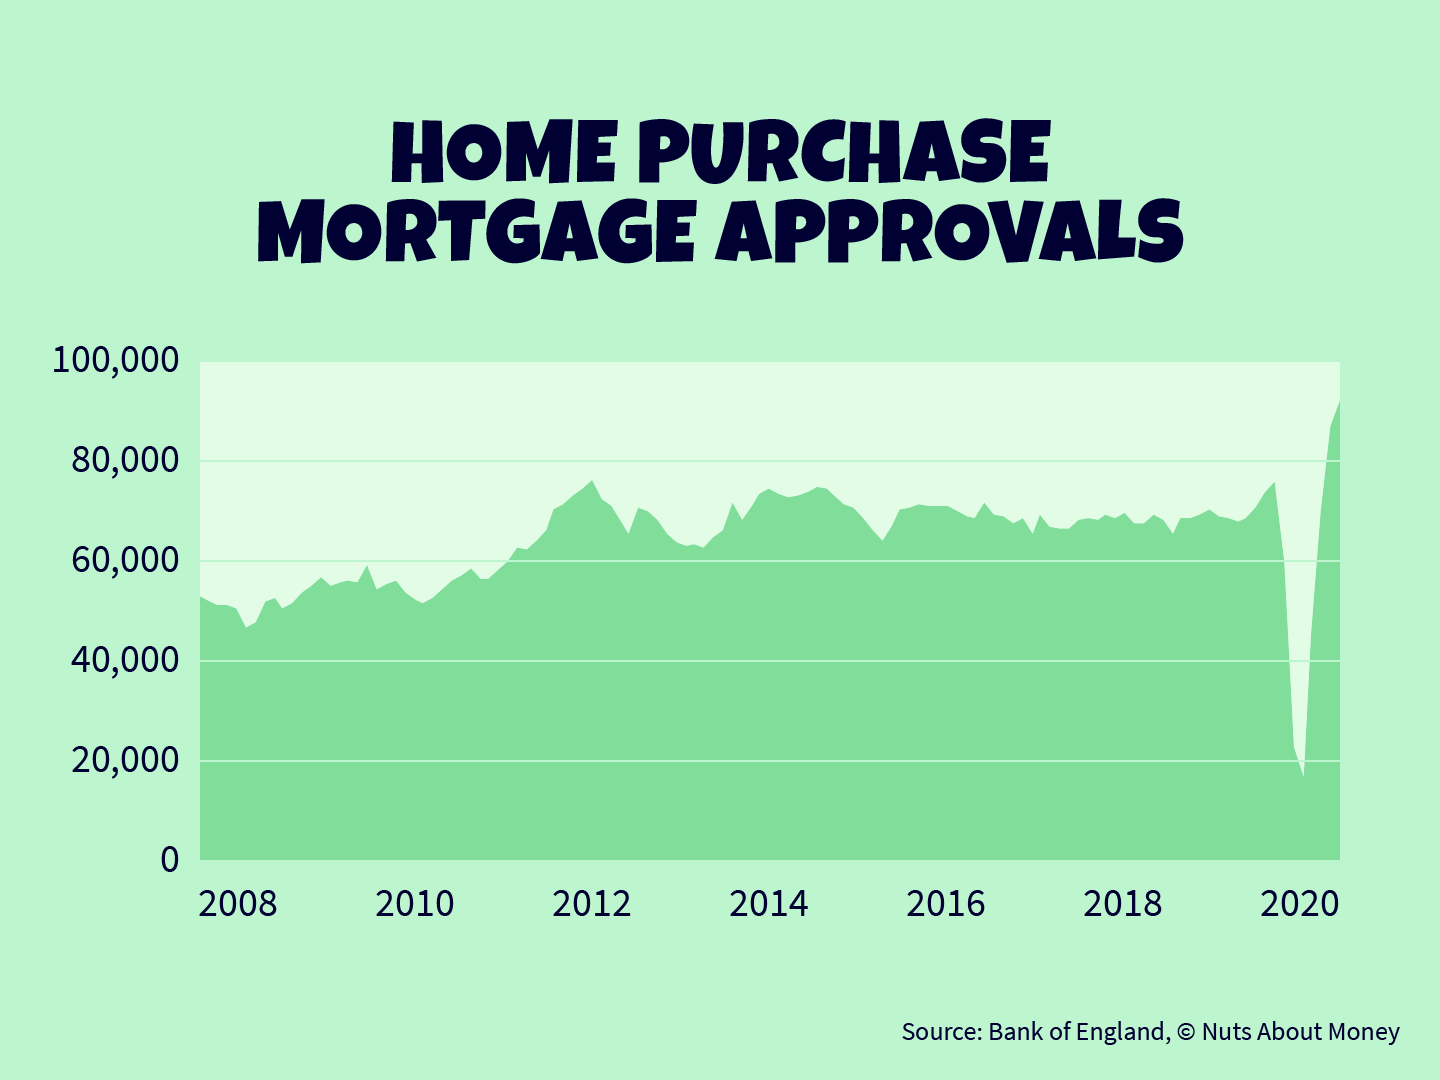 Home purchase mortgage approvals